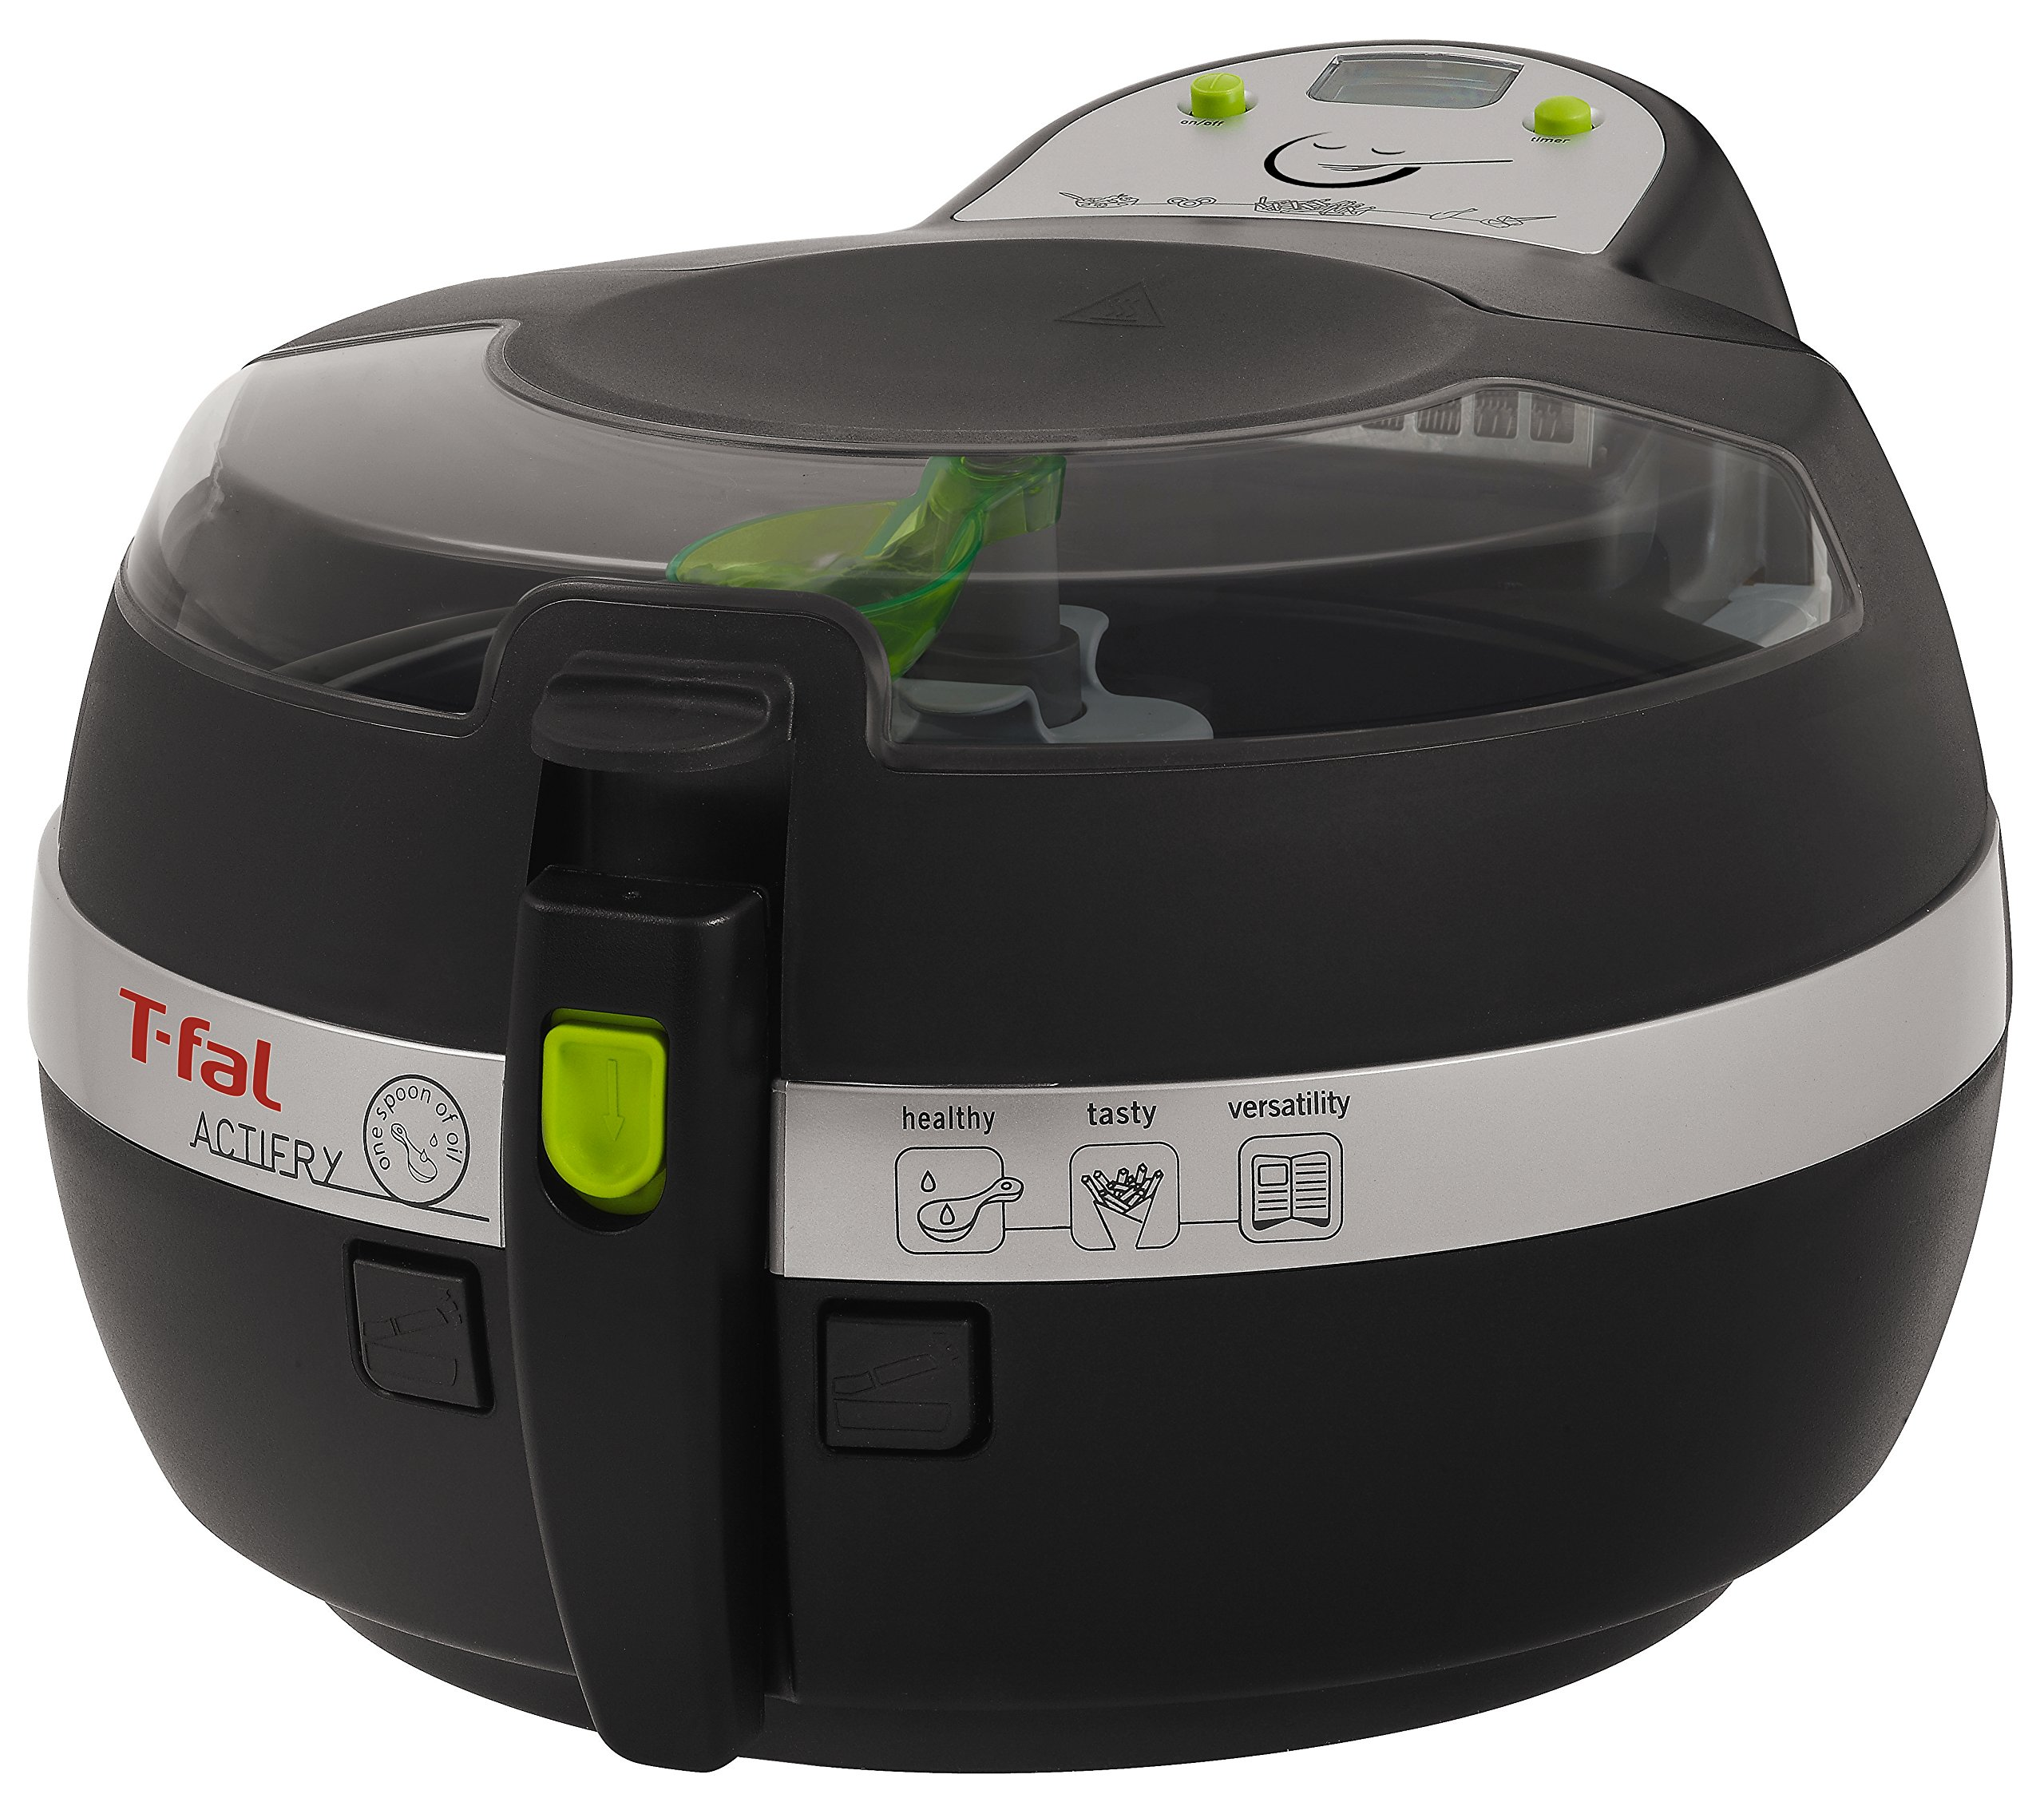 T-fal FZ700251 Actifry Oil Less Air Fryer with Large 2.2 Lbs Food Capacity and Recipe Book, Black by T-fal